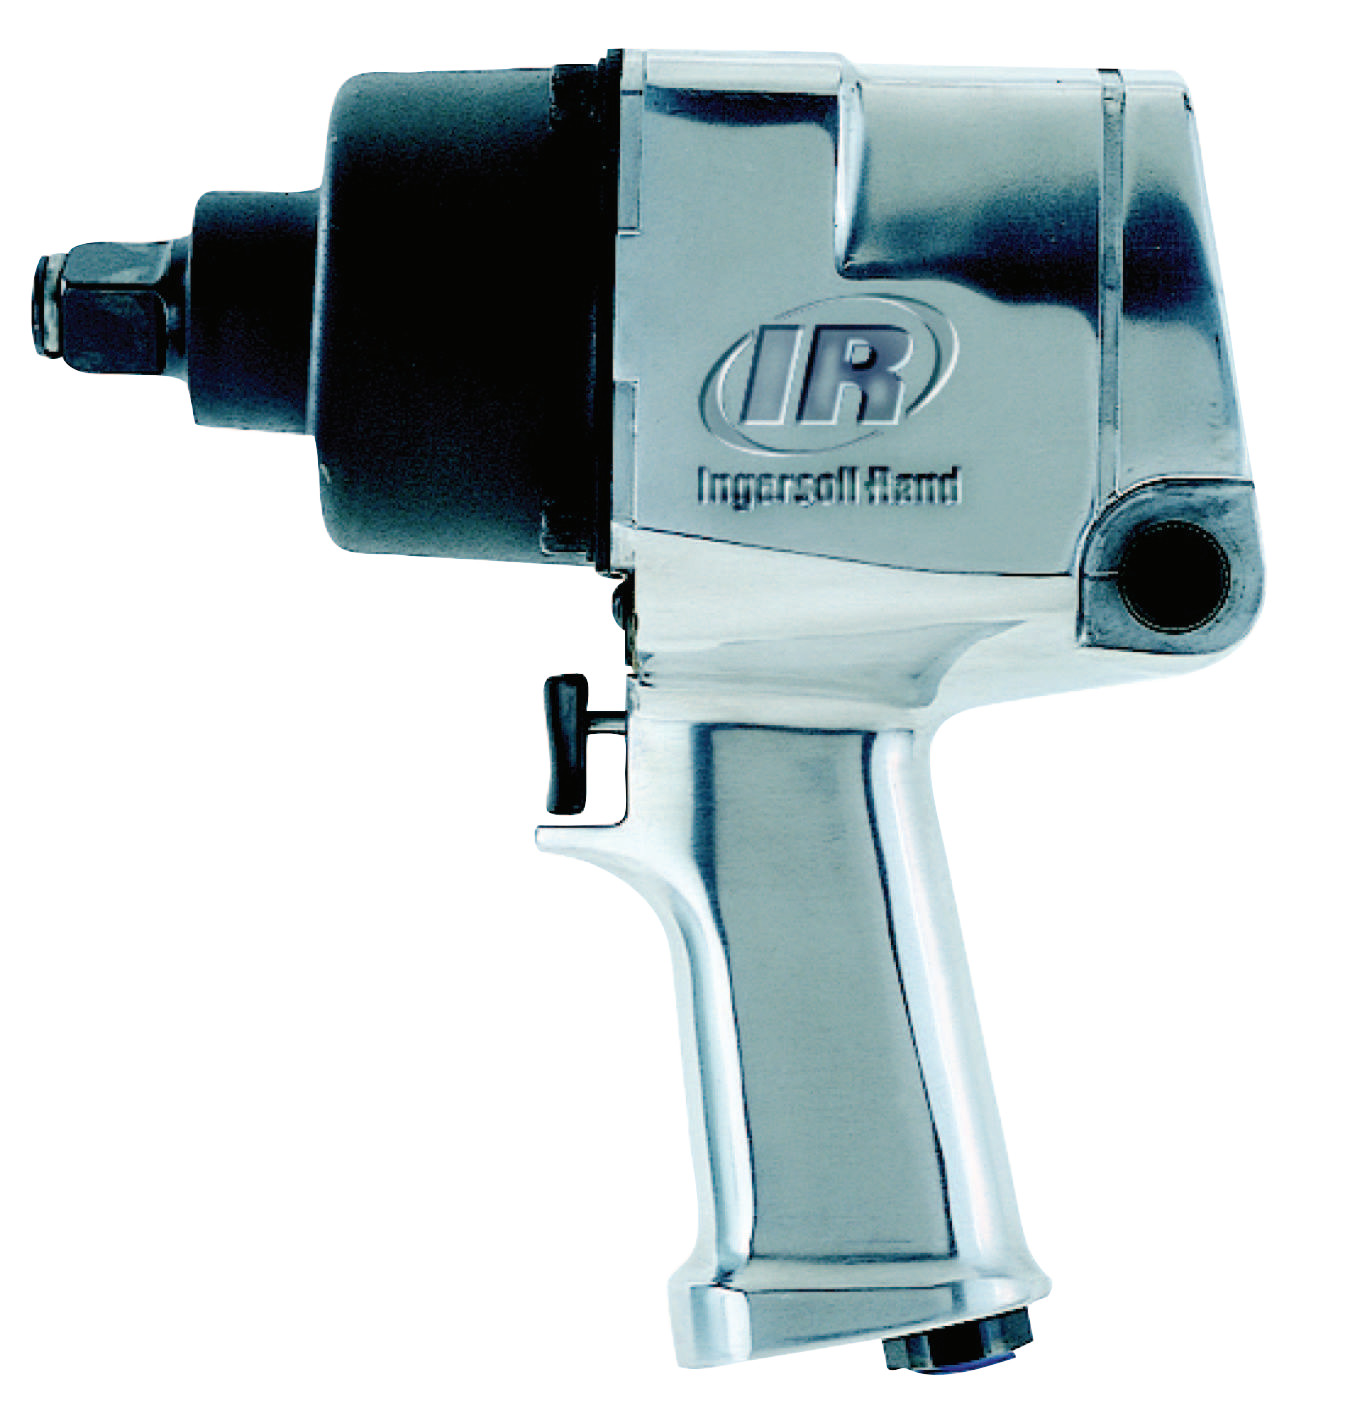 "Ingersoll-Rand 3/4"" Air Impactool Wrenches, 200 ft lb - 1,100 ft lb, 8.8 in Long"